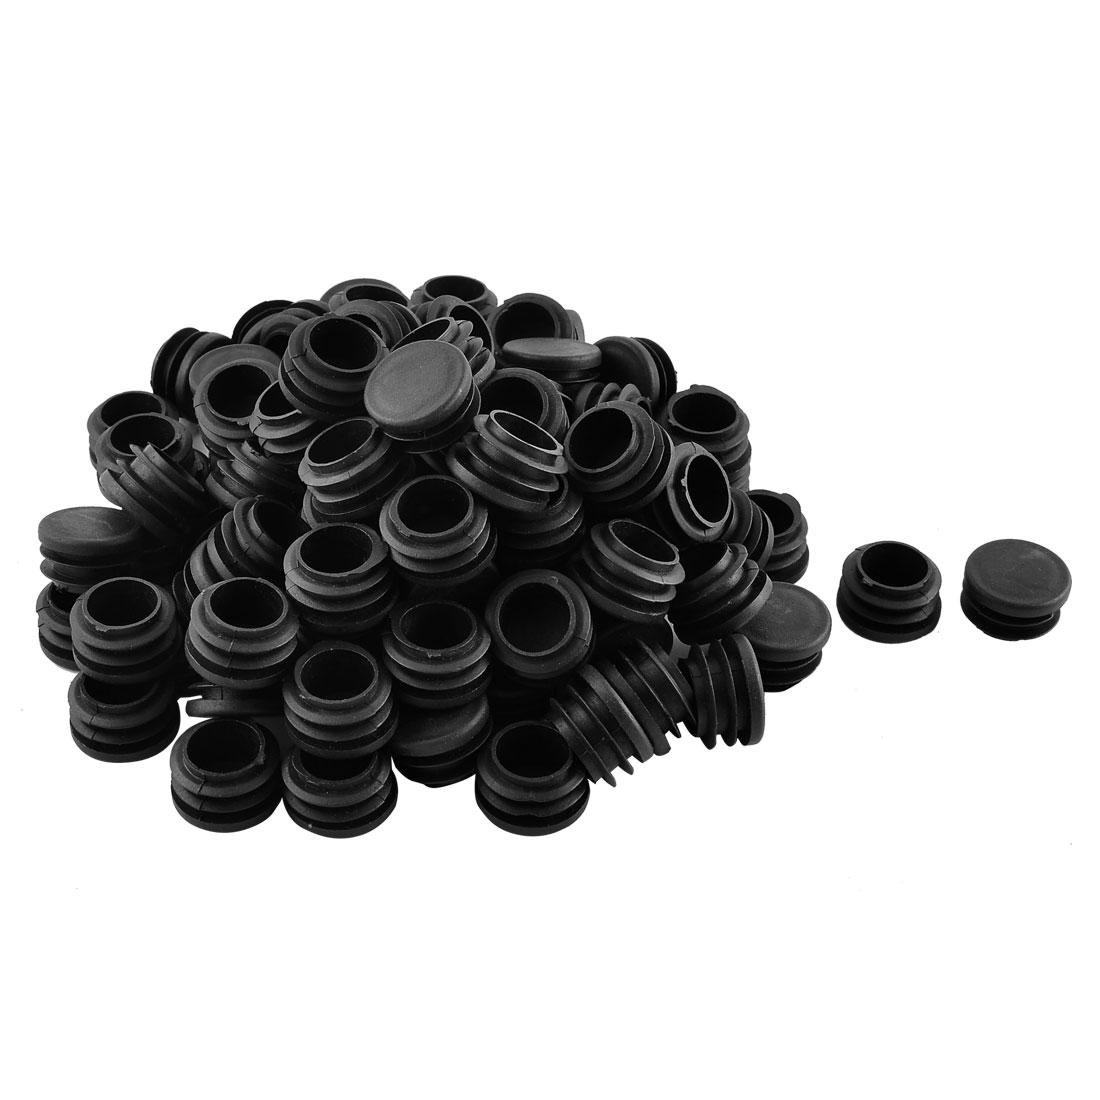 Home Plastic Cylindrical Shaped Furniture Table Chair Leg Foot Tube Insert Black 100 Pcs